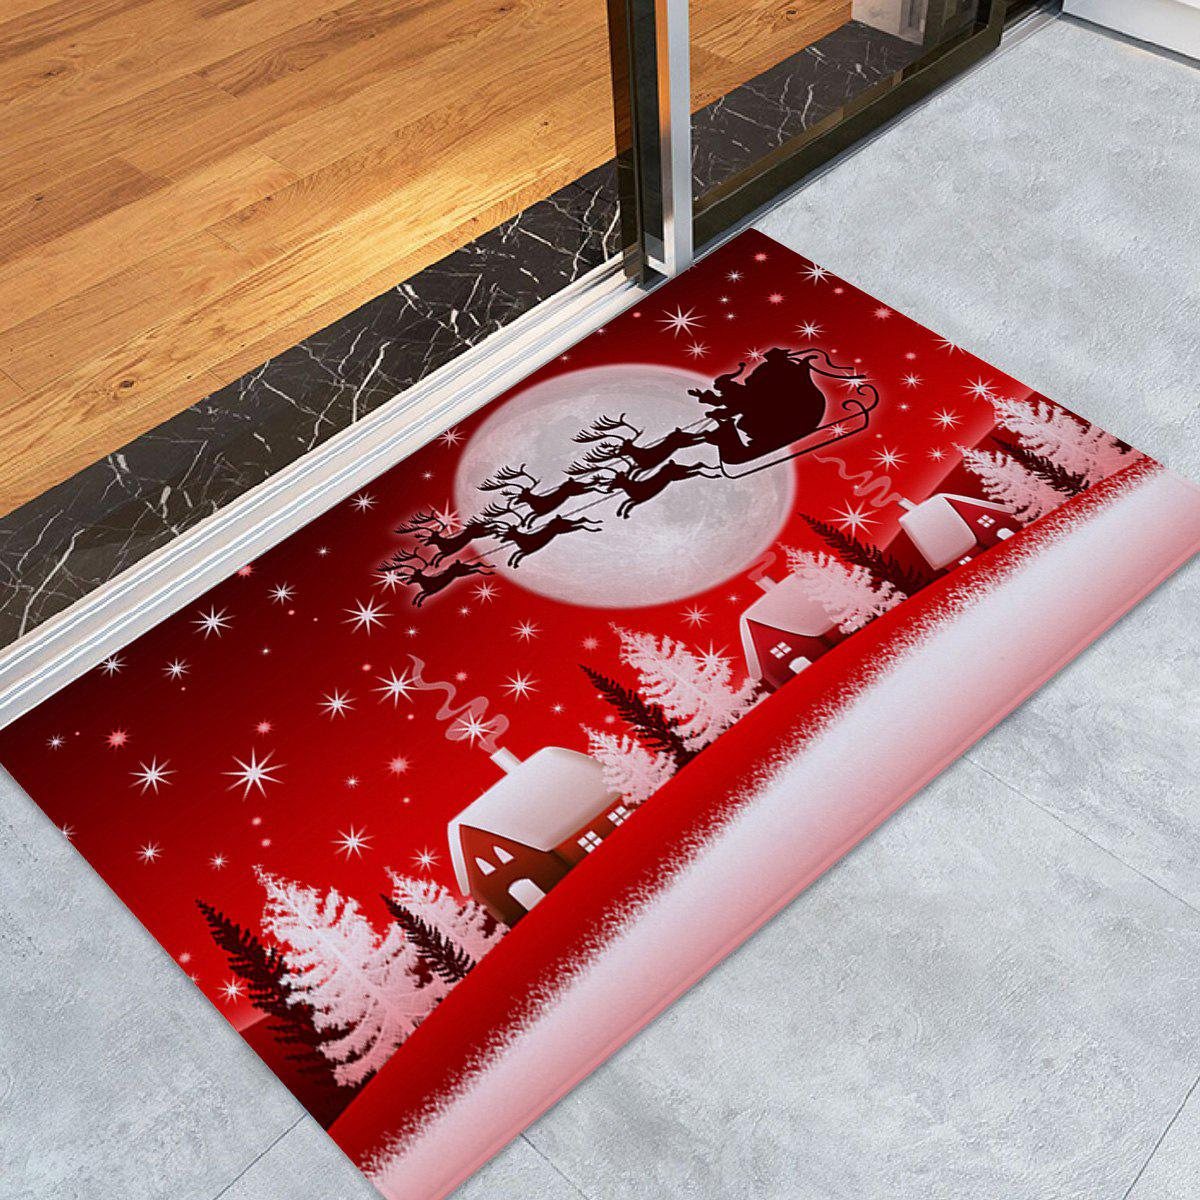 Christmas Sled Moon Print Coral Fleece Antiskid Bath RugHOME<br><br>Size: W16 INCH * L24 INCH; Color: RED; Products Type: Bath rugs; Materials: Coral FLeece; Style: Festival; Shape: Rectangular; Package Contents: 1 x Rug;